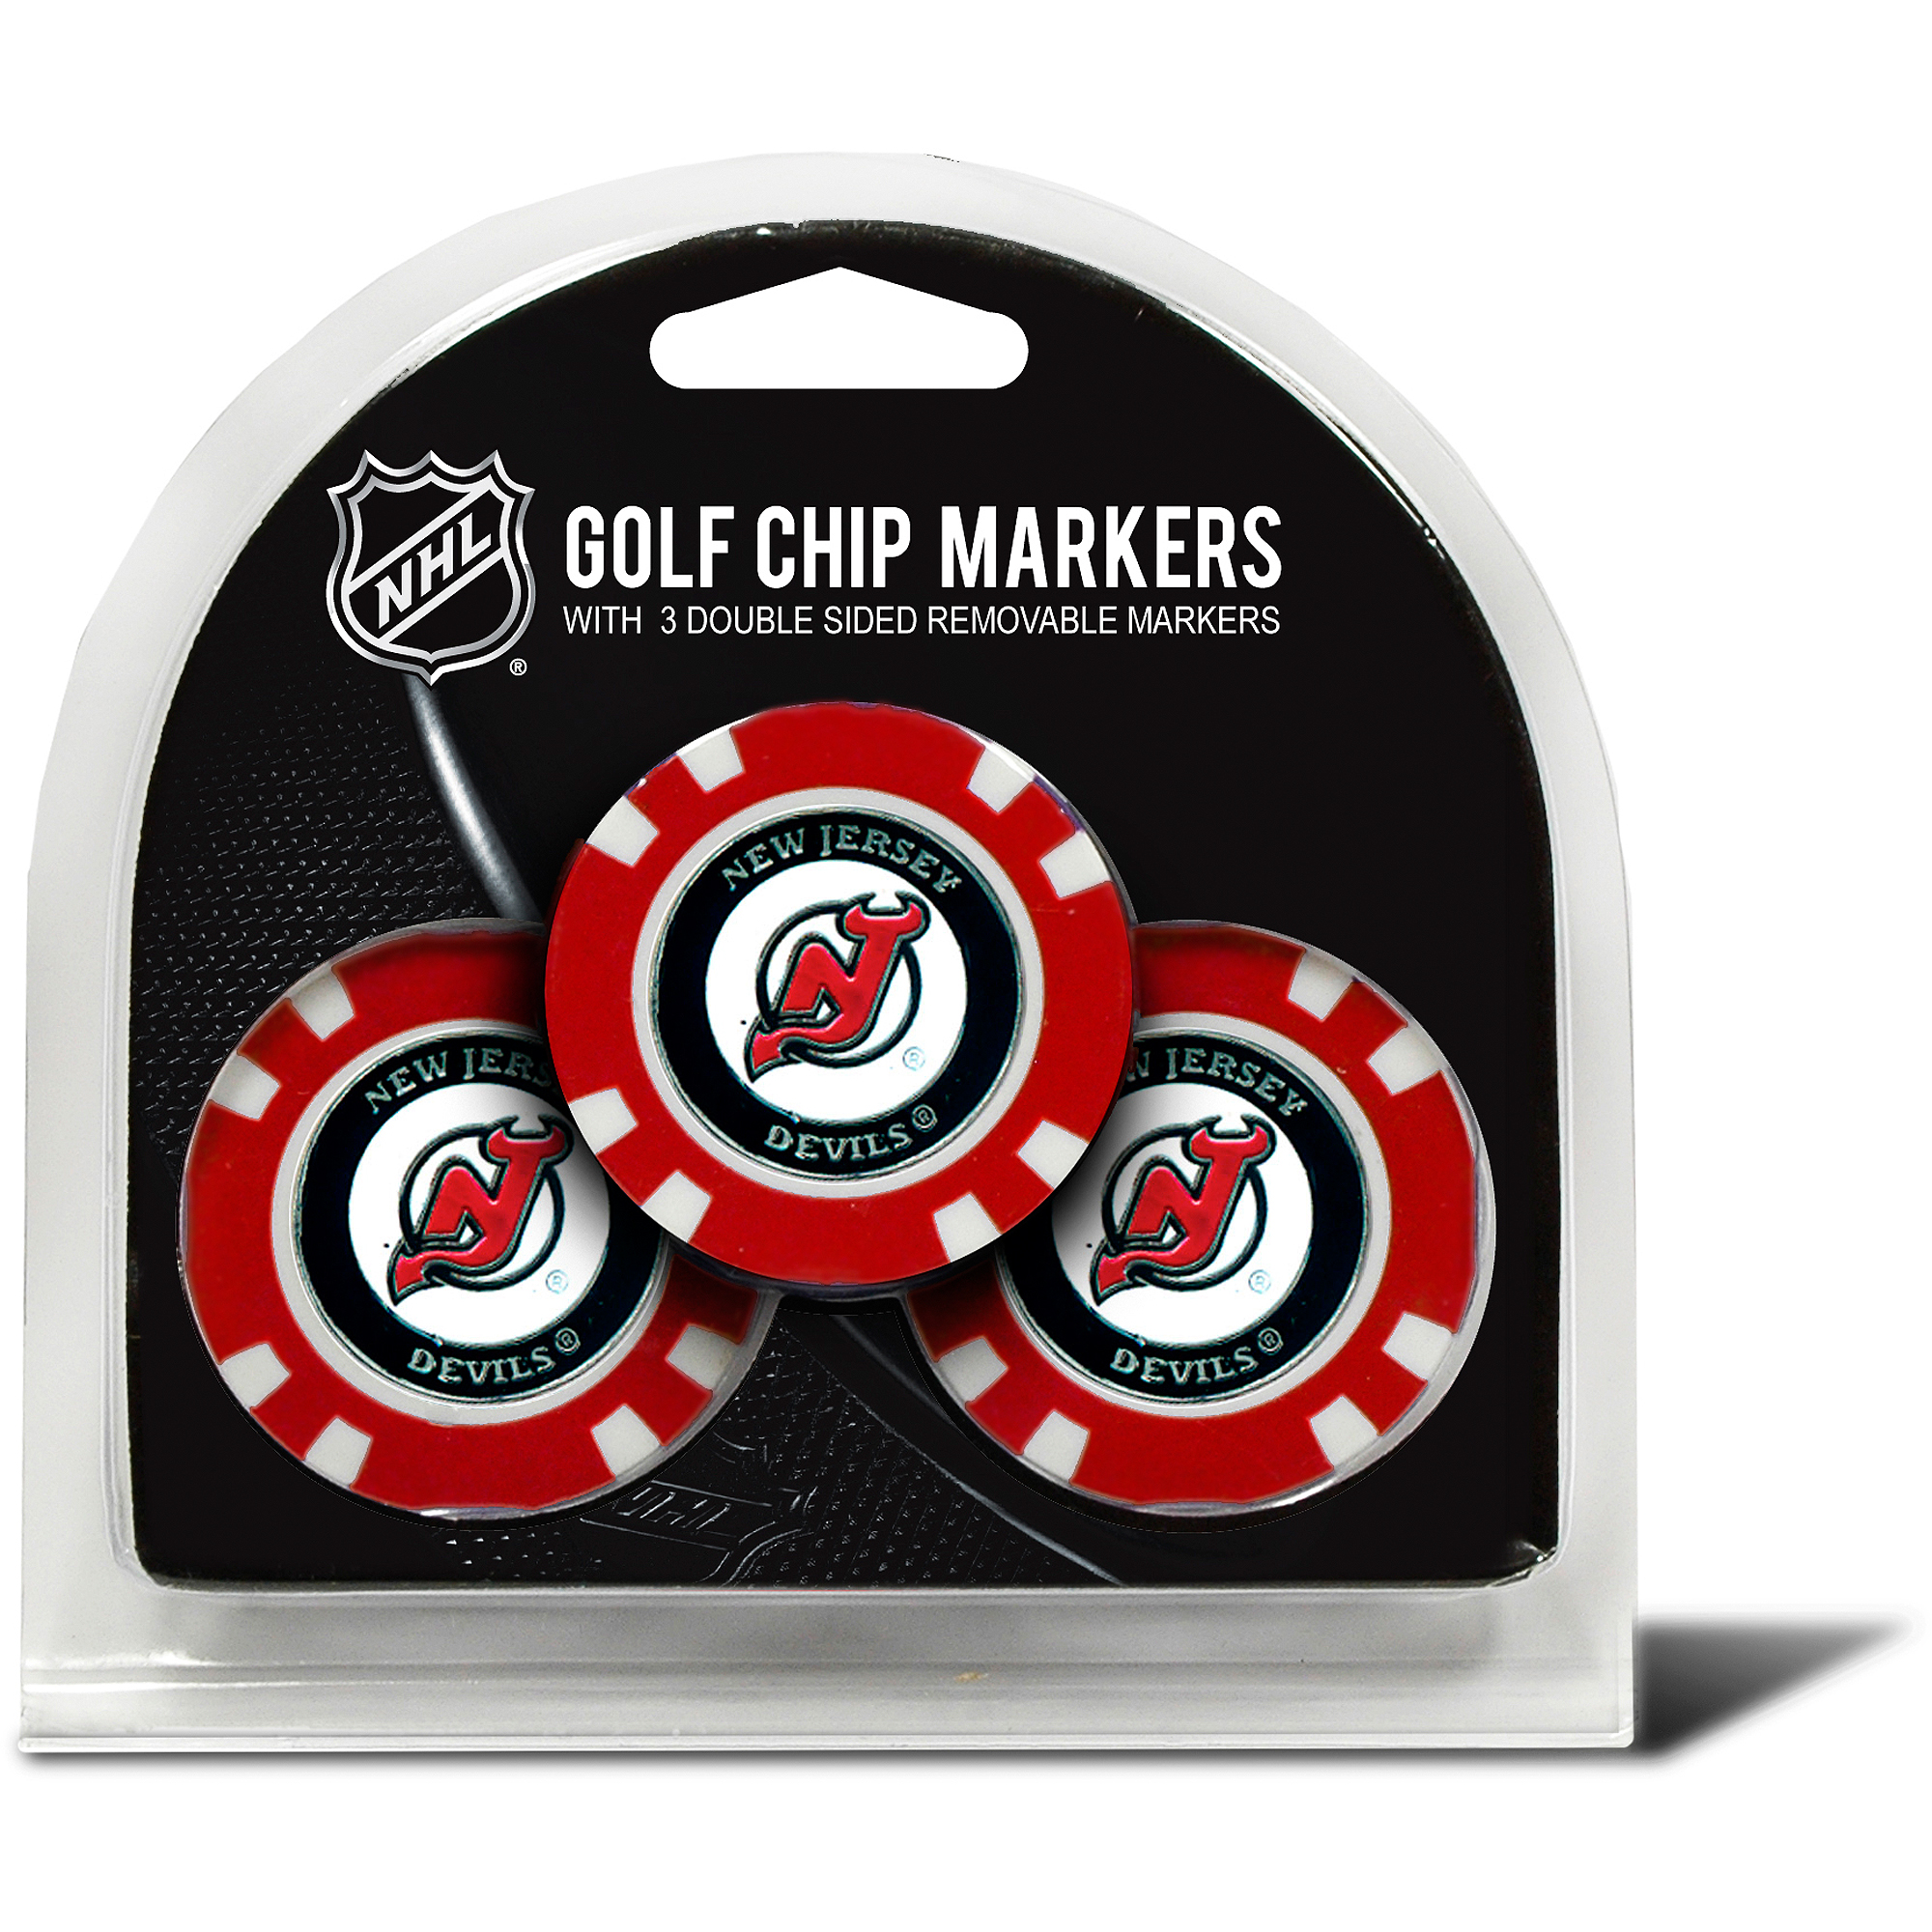 New Jersey Devils Golf Chips, 3-Pack